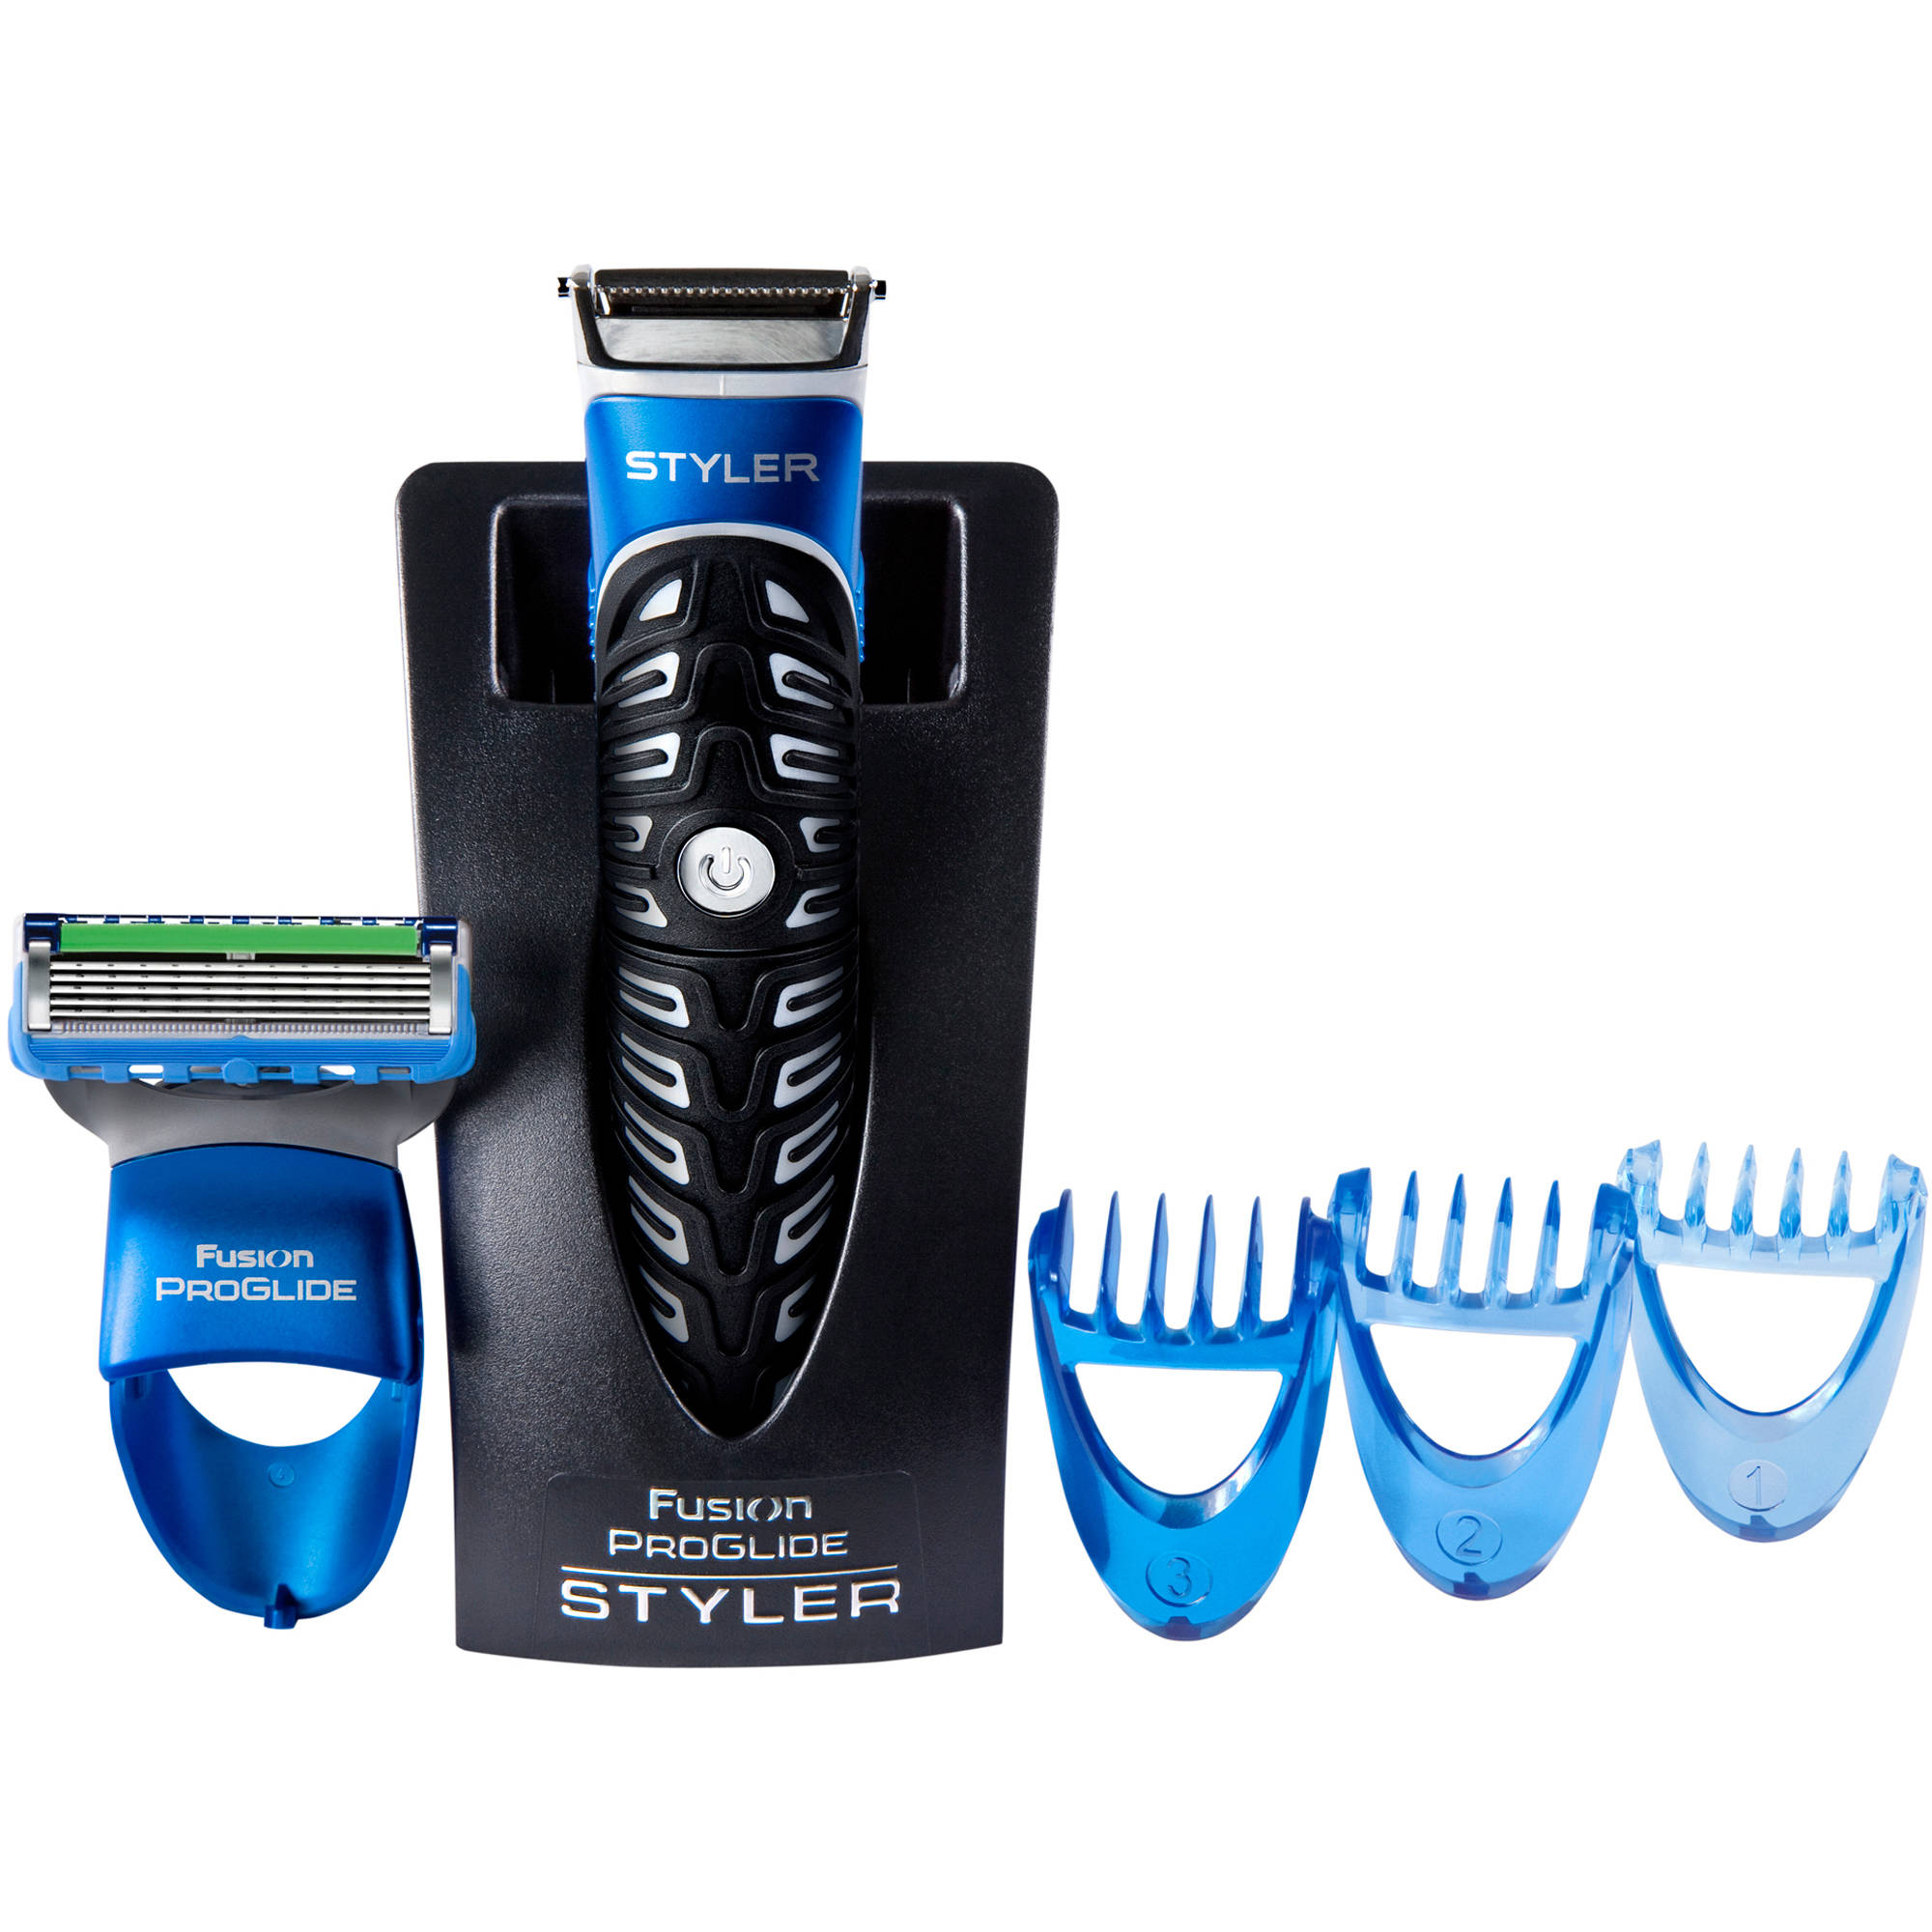 Gillette Fusion ProGlide Styler Razor System with Braun Technology